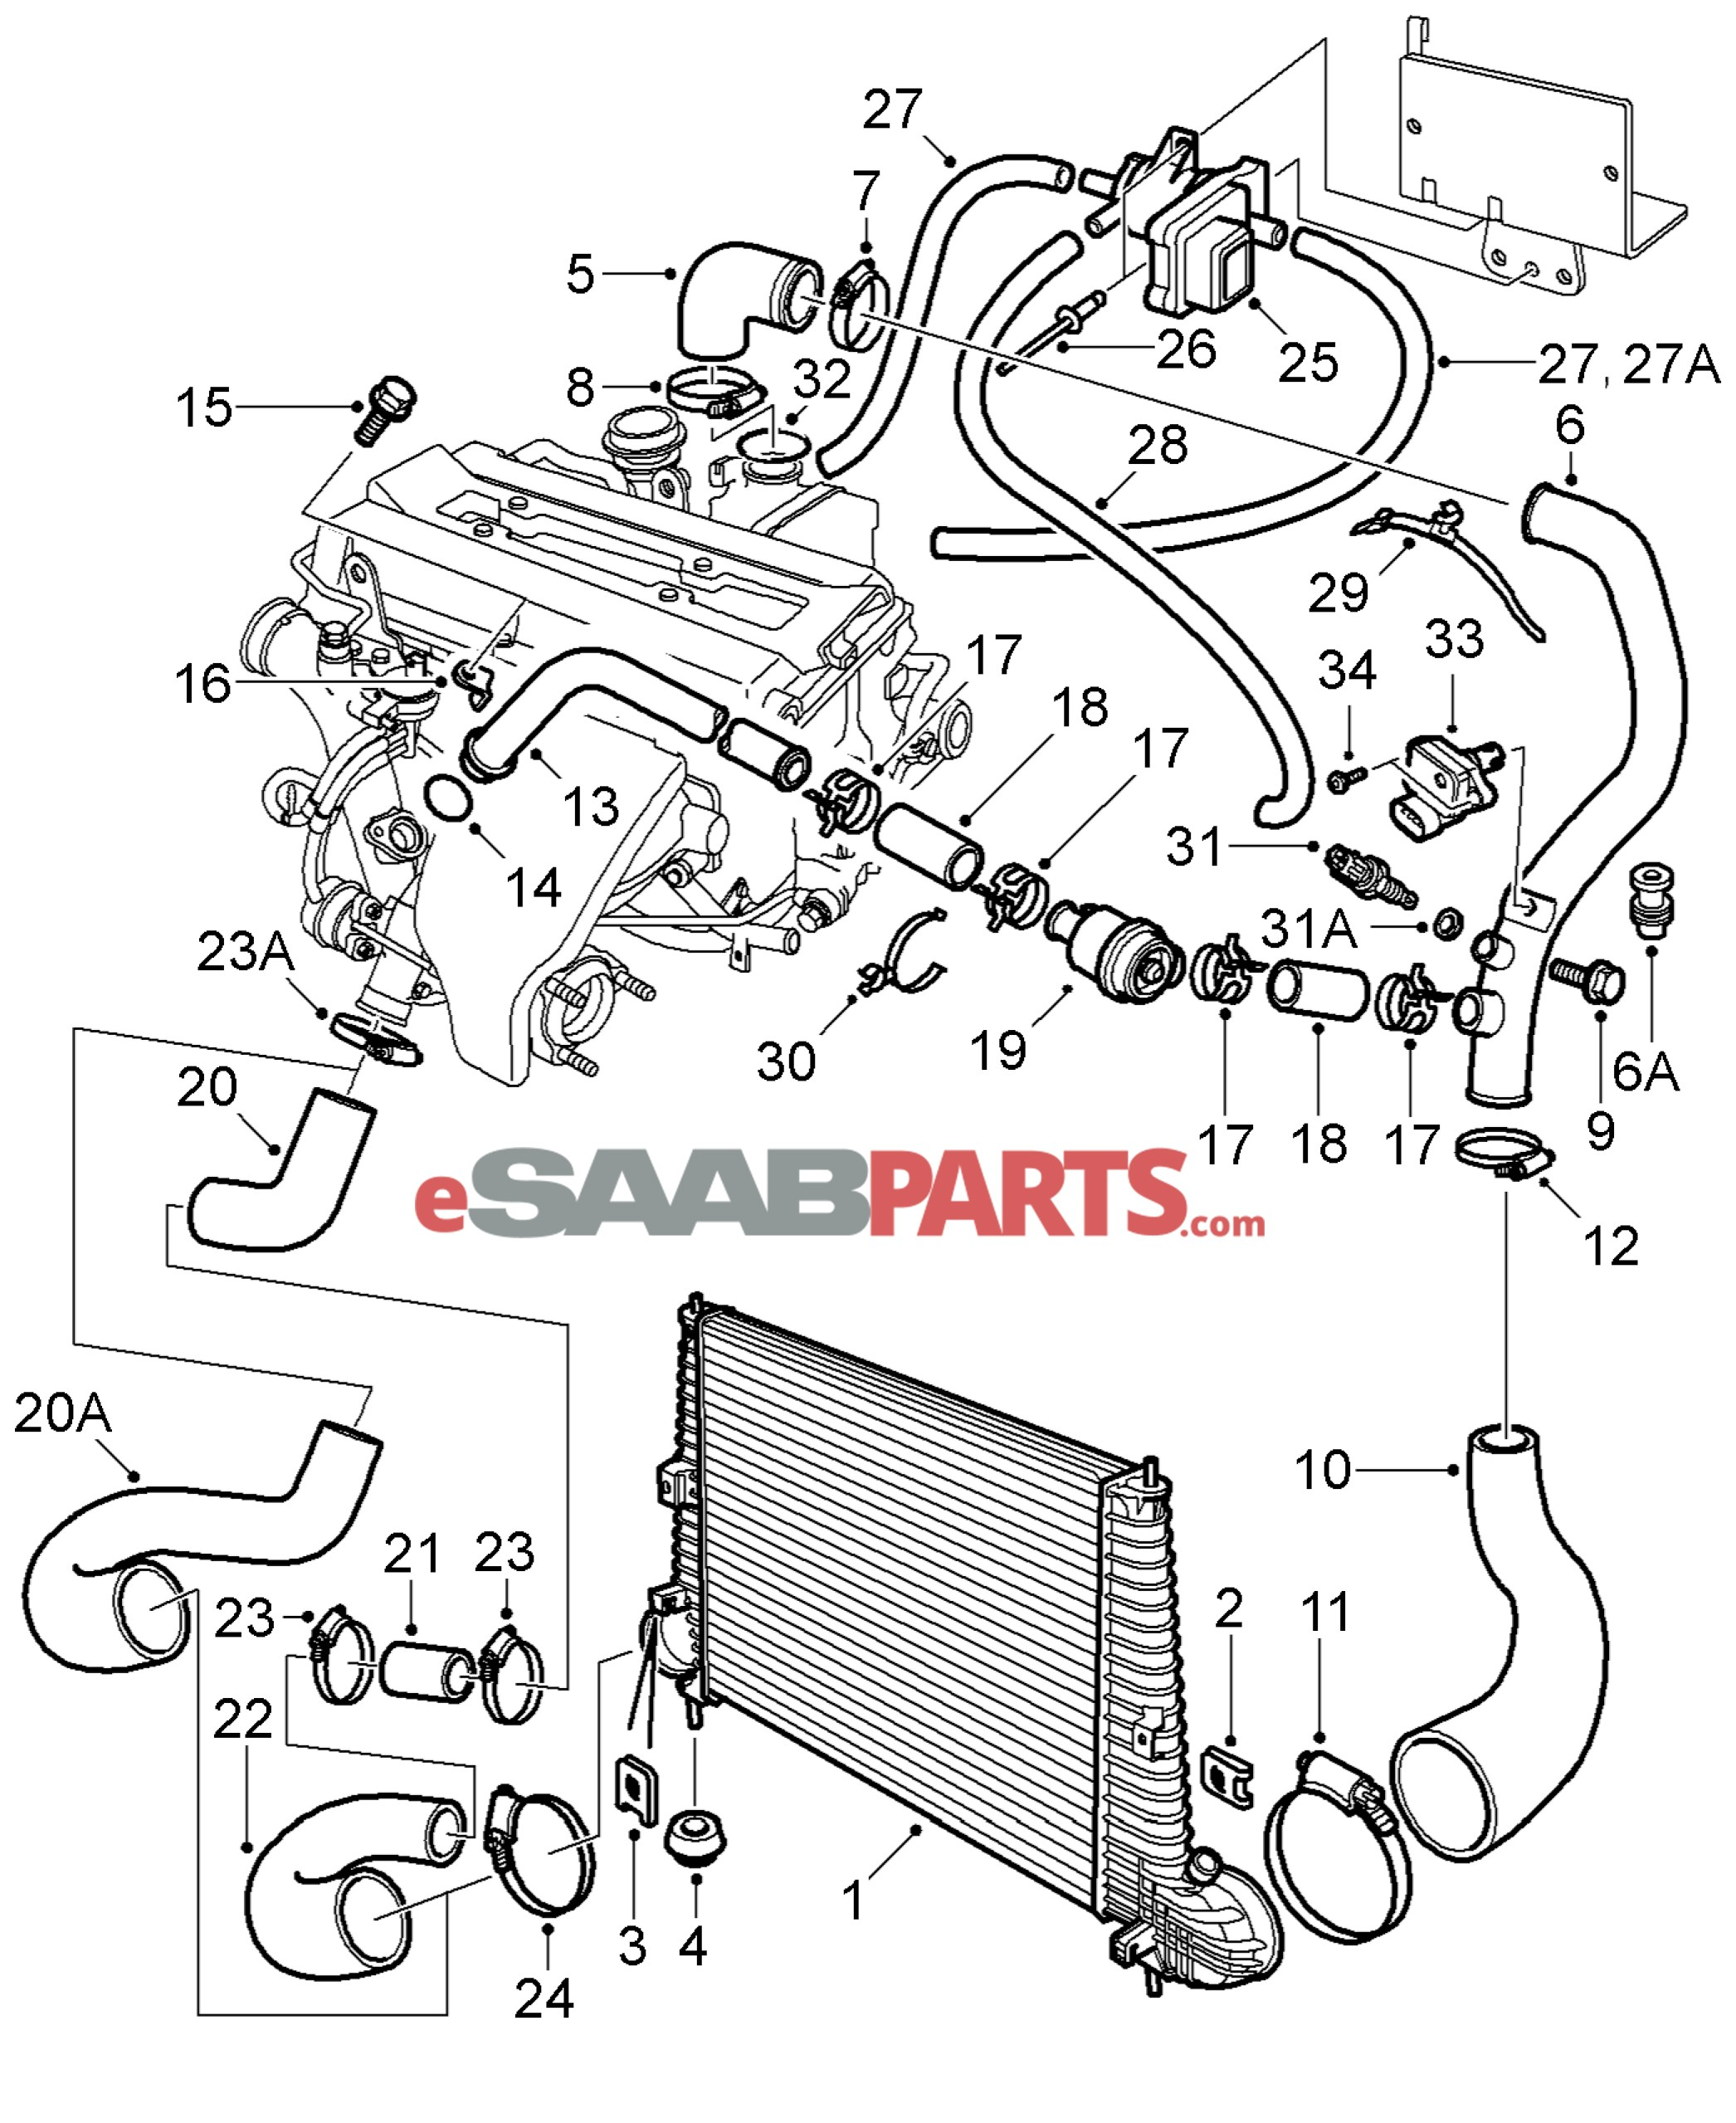 hight resolution of 06 saab 9 3 fuse diagram